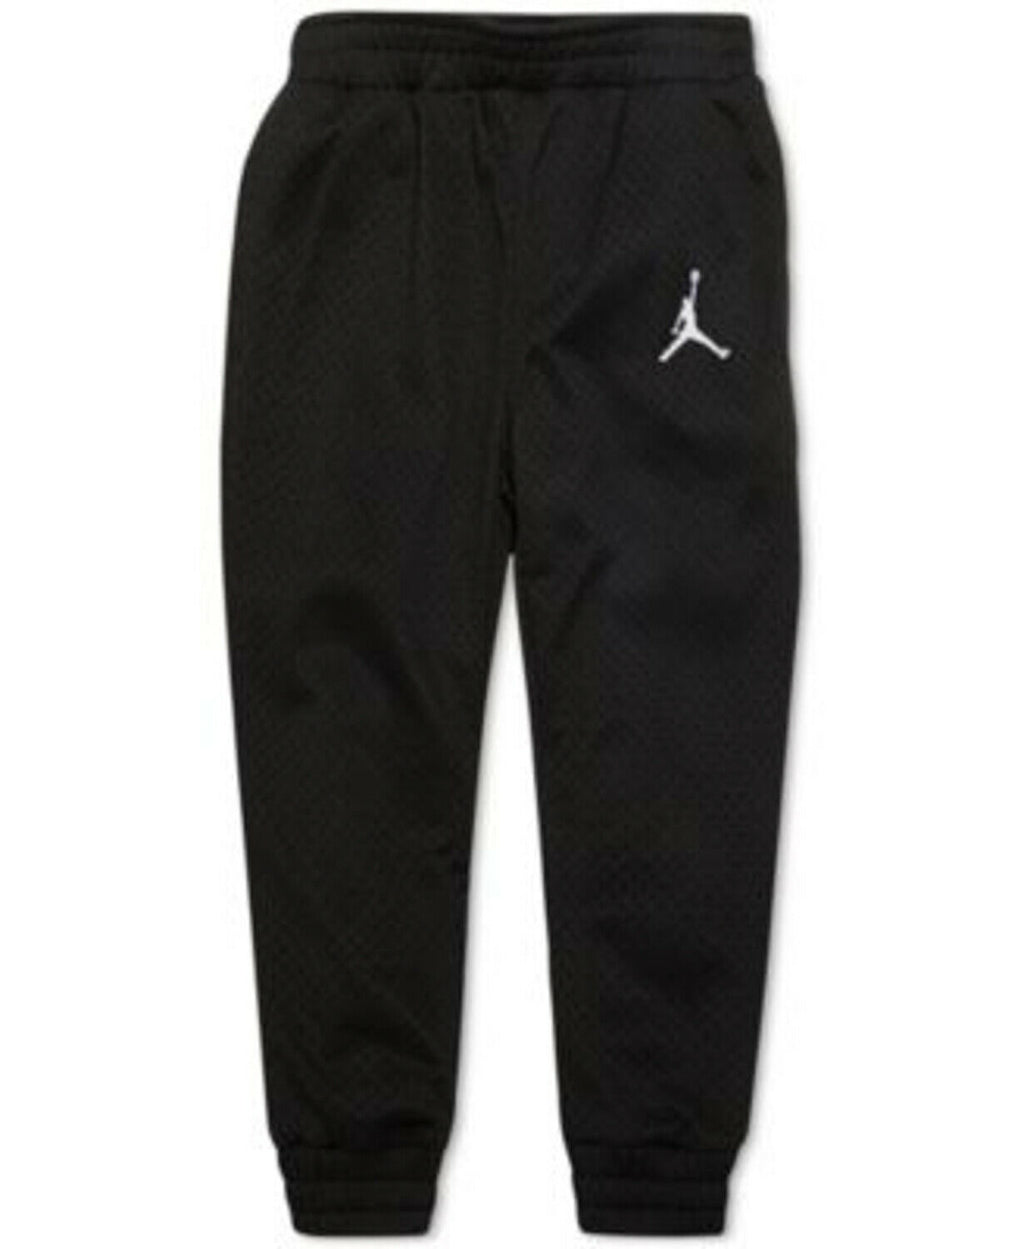 NEW Jordan Air Big Boys Jogger Pants, Black Sz. M